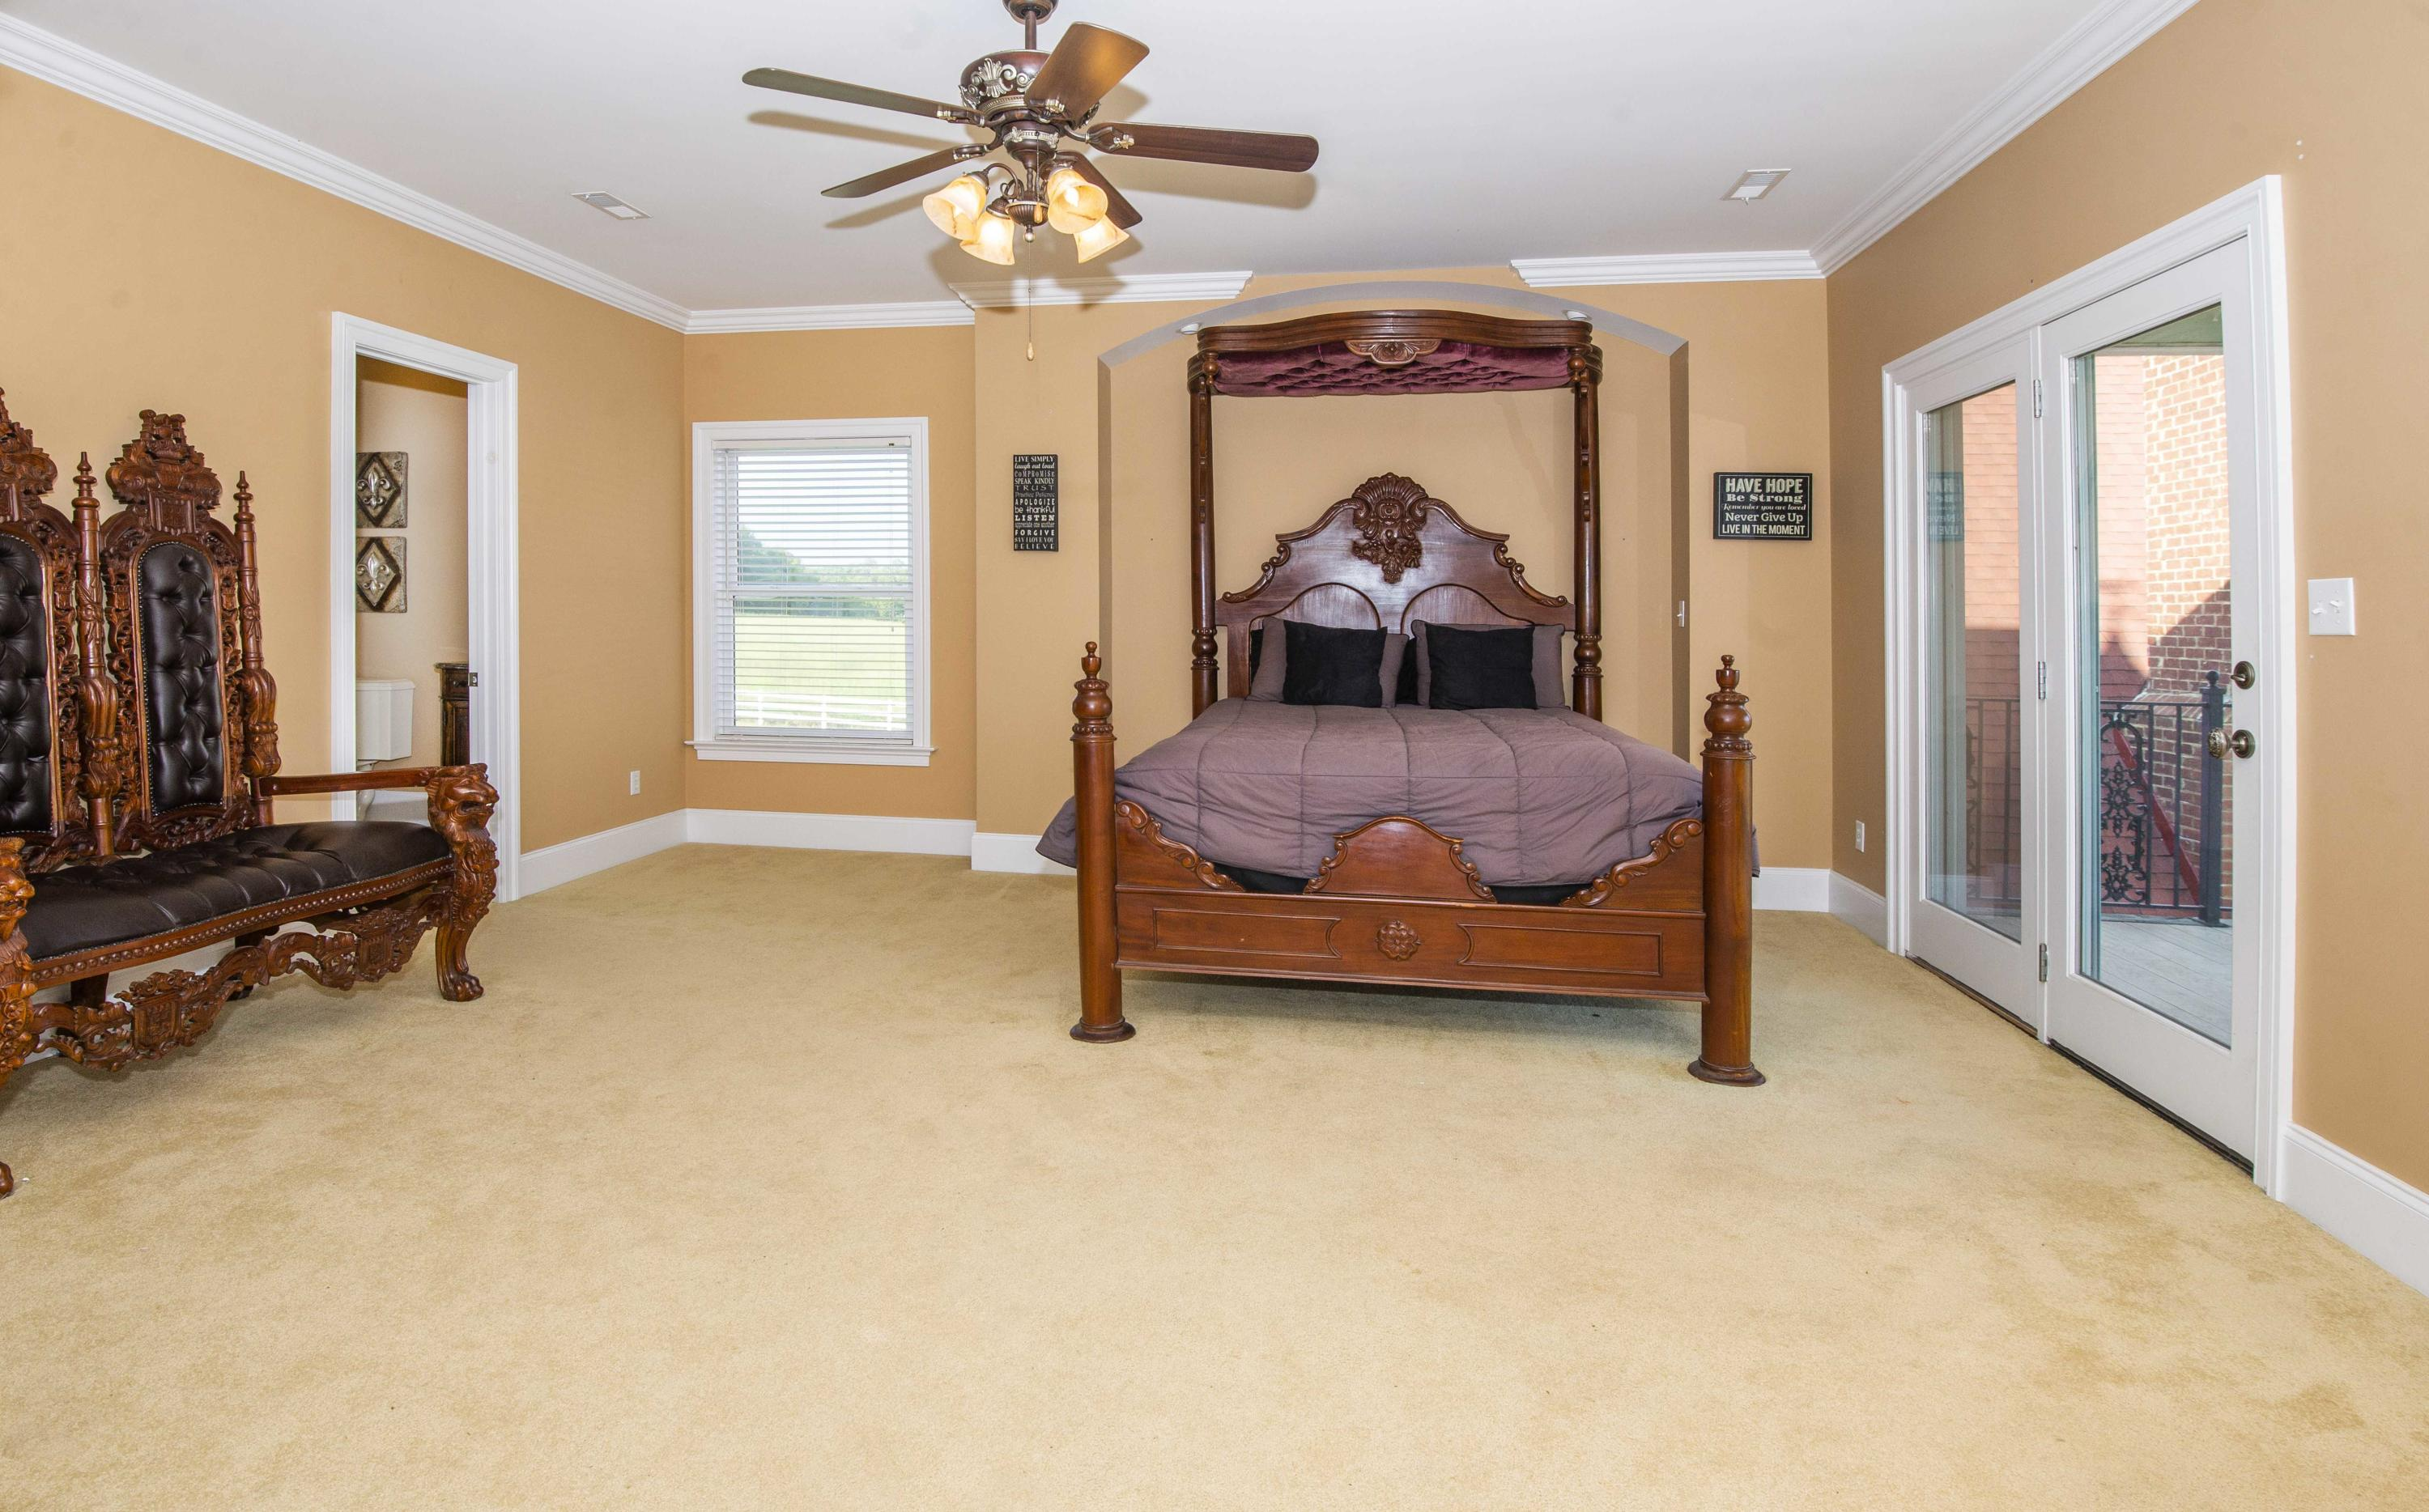 4450 Lowes Ferry Rd: